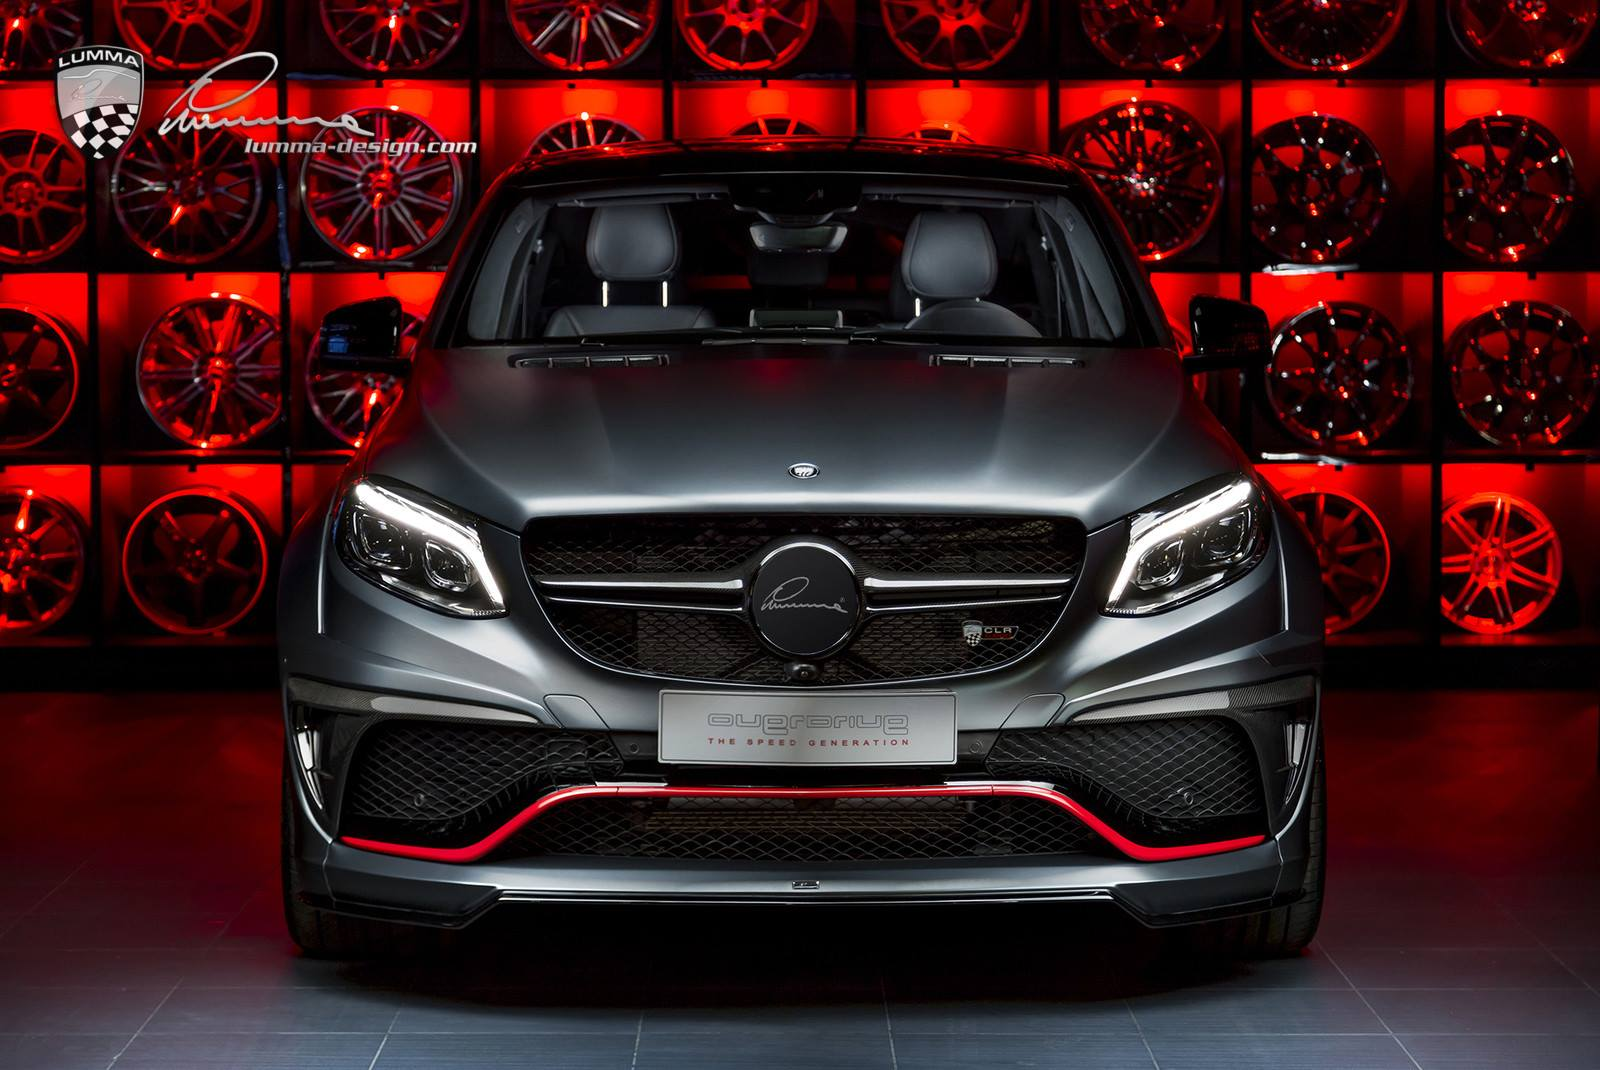 Mercedes-Benz GLE Coupe by Lumma Design (3)